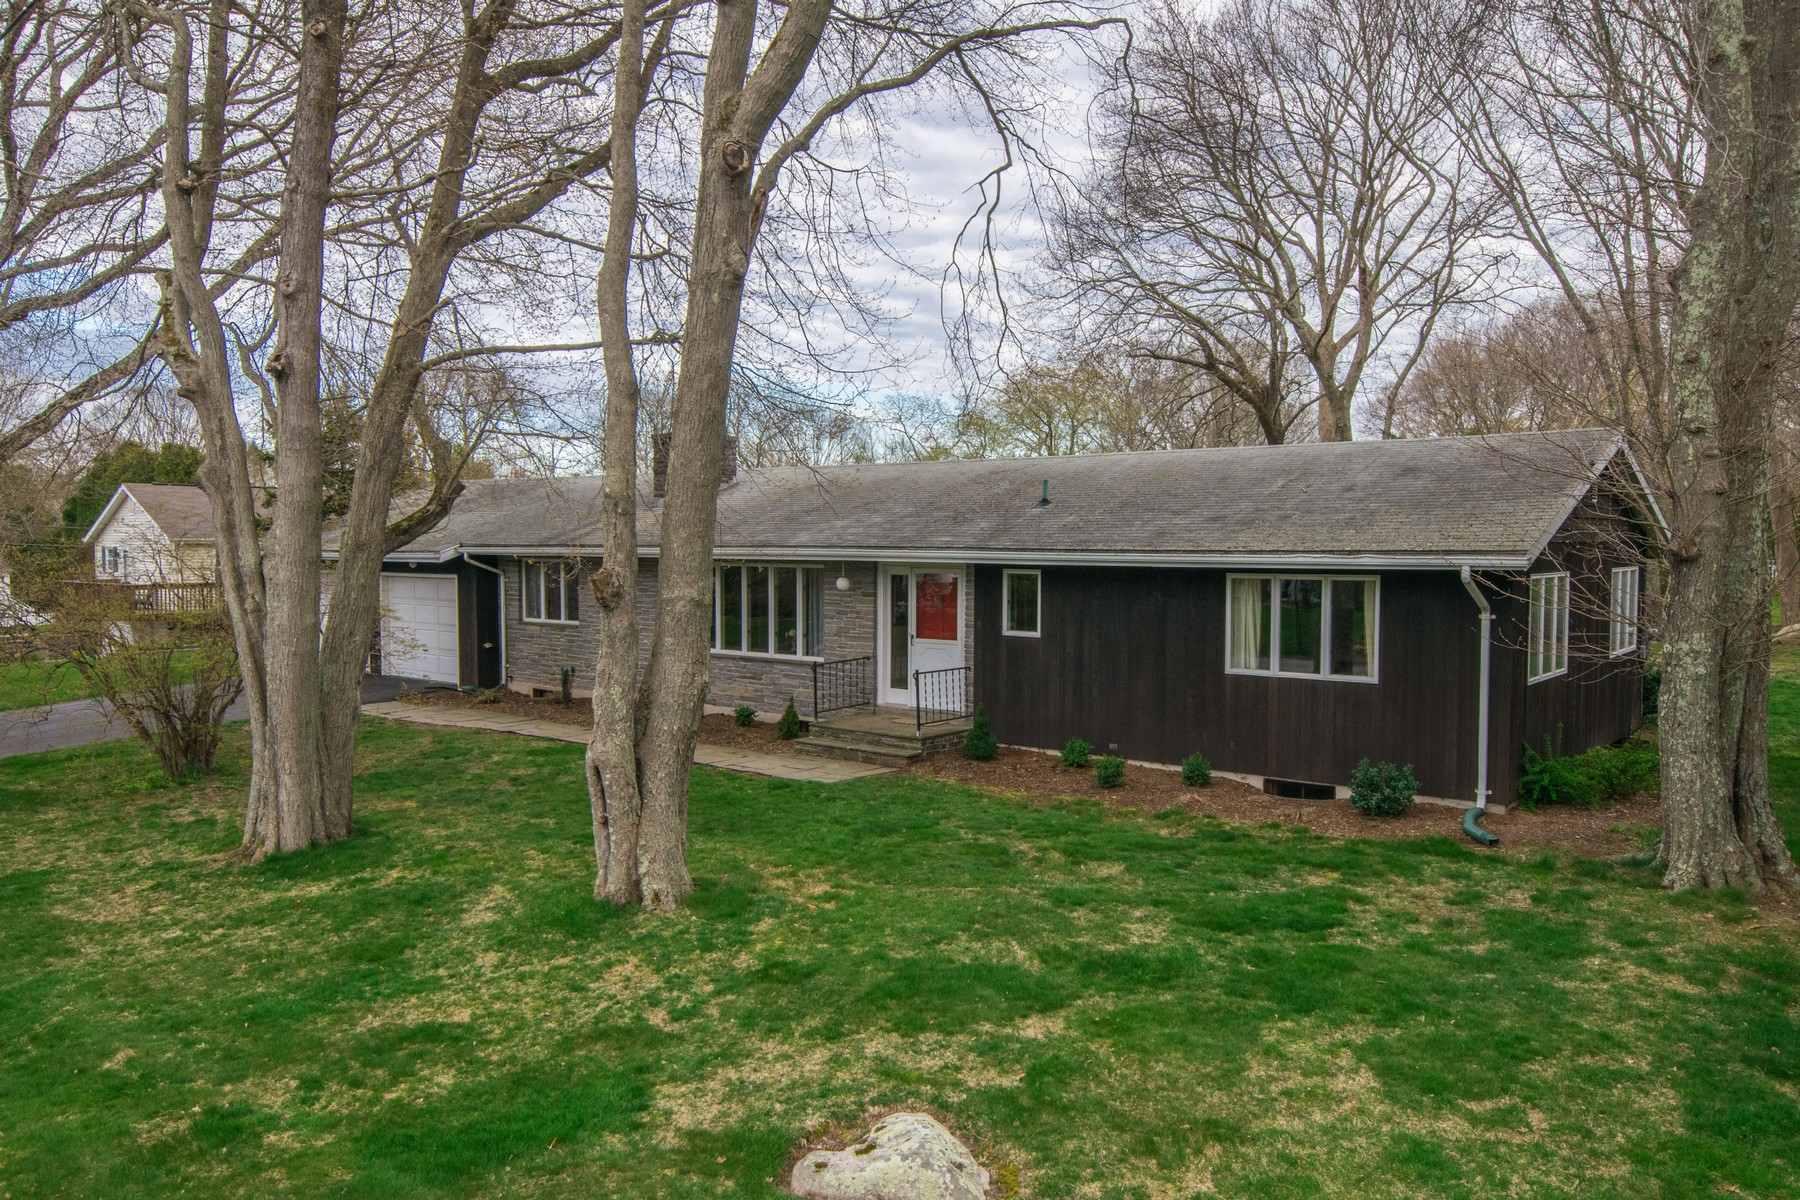 Single Family Home for Sale at Gracious ranch home with deeded rights to a private beach 4 Mitchell Dr East Lyme, Connecticut, 06357 United States